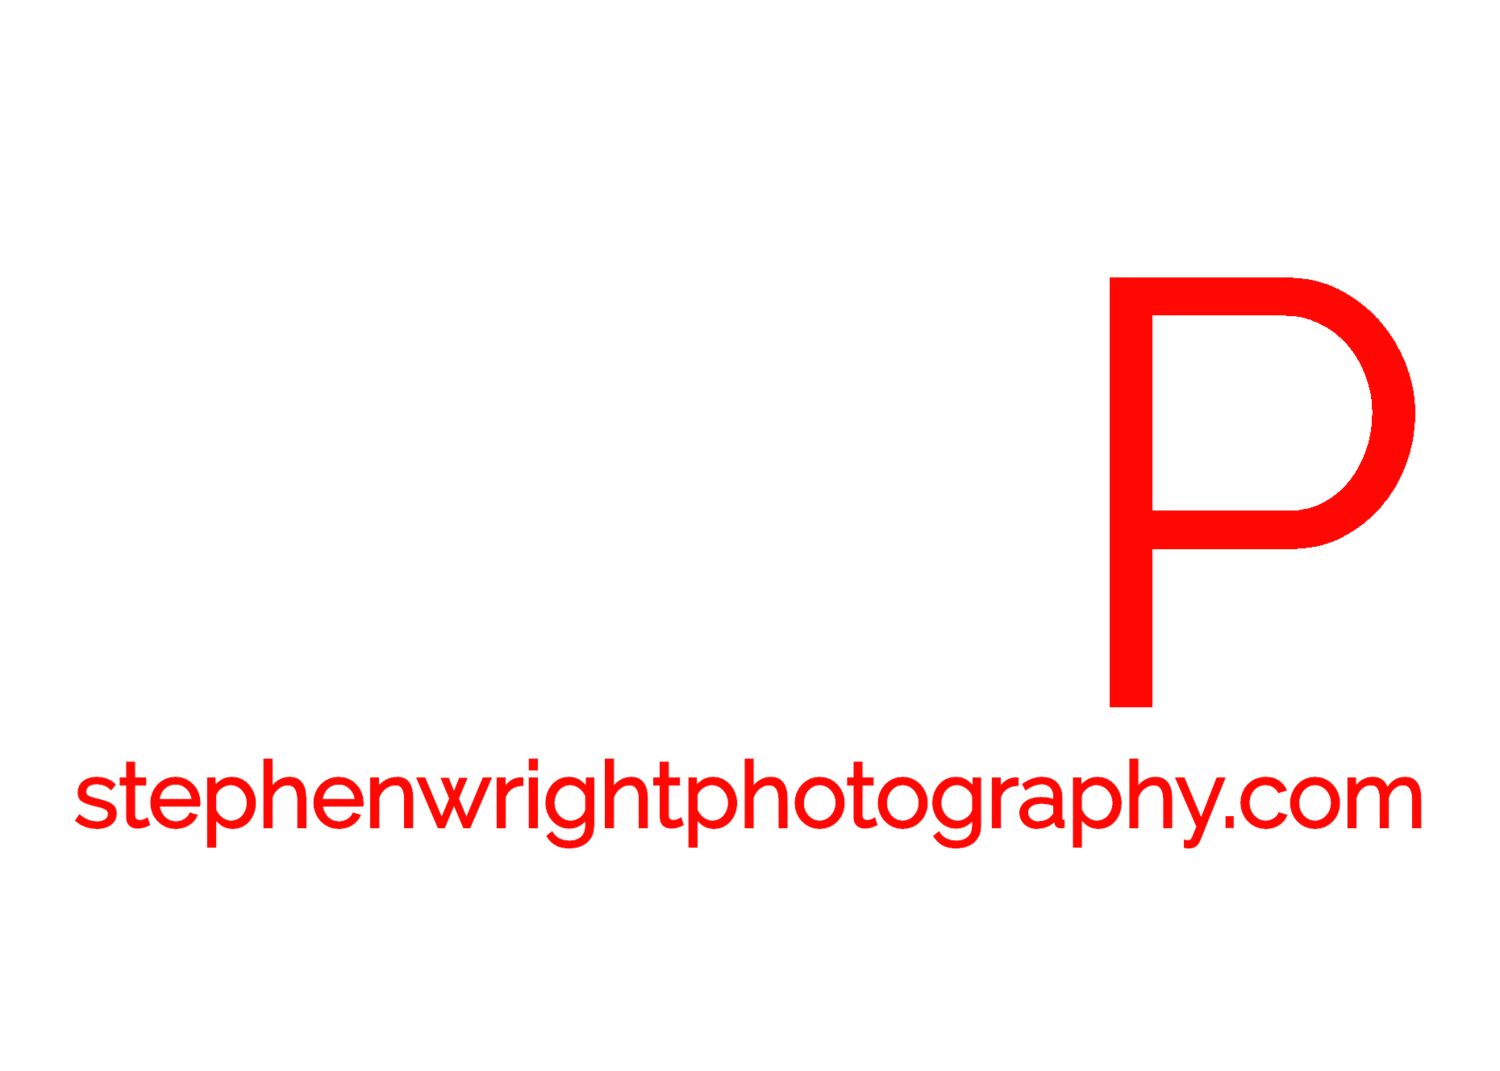 Stephen Wright Photography